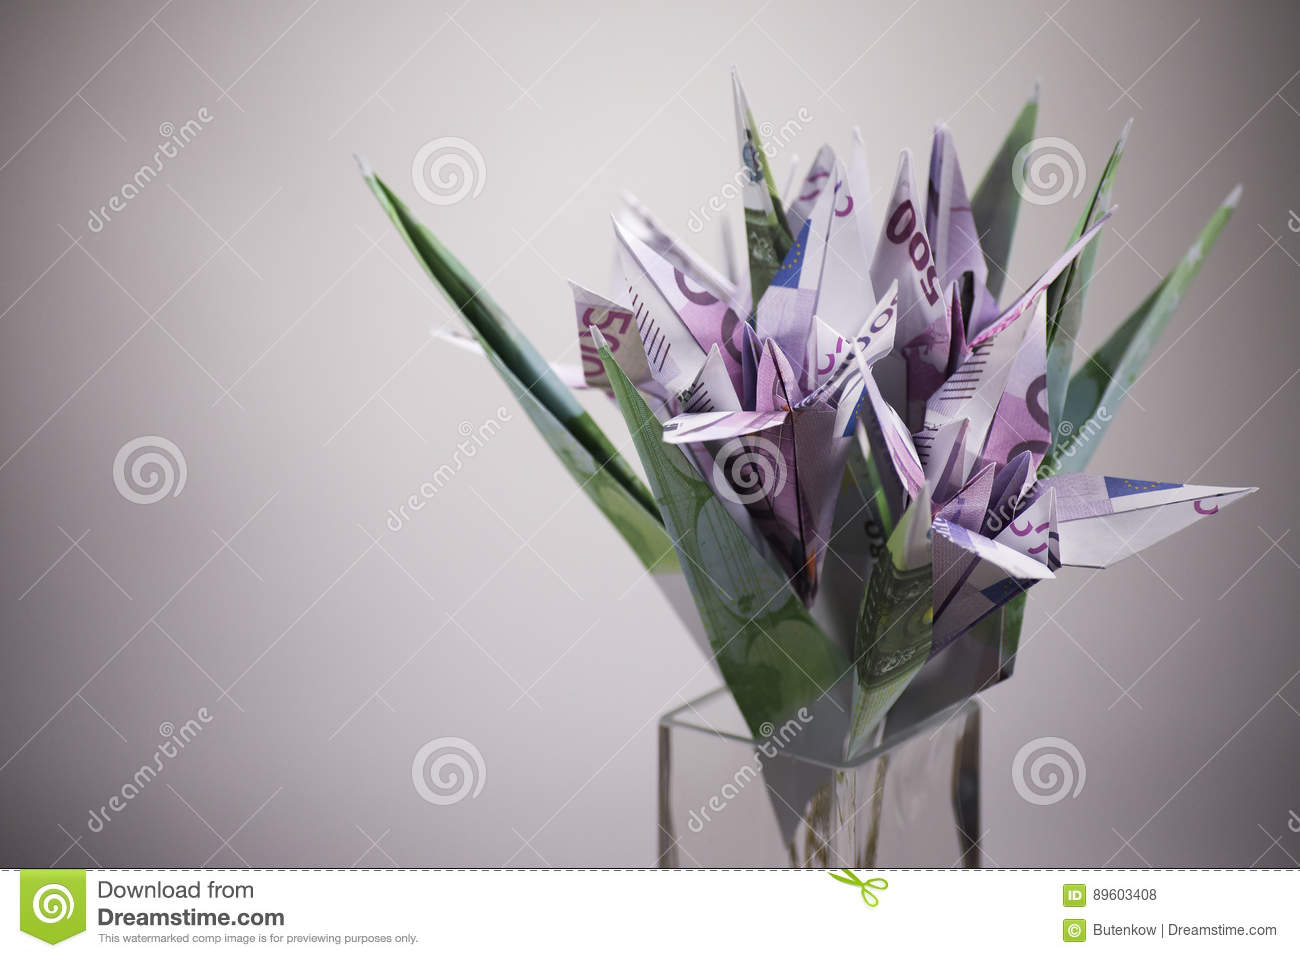 Flowers Origami Banknotes Stock Photo Image Of Lifetime 89603408